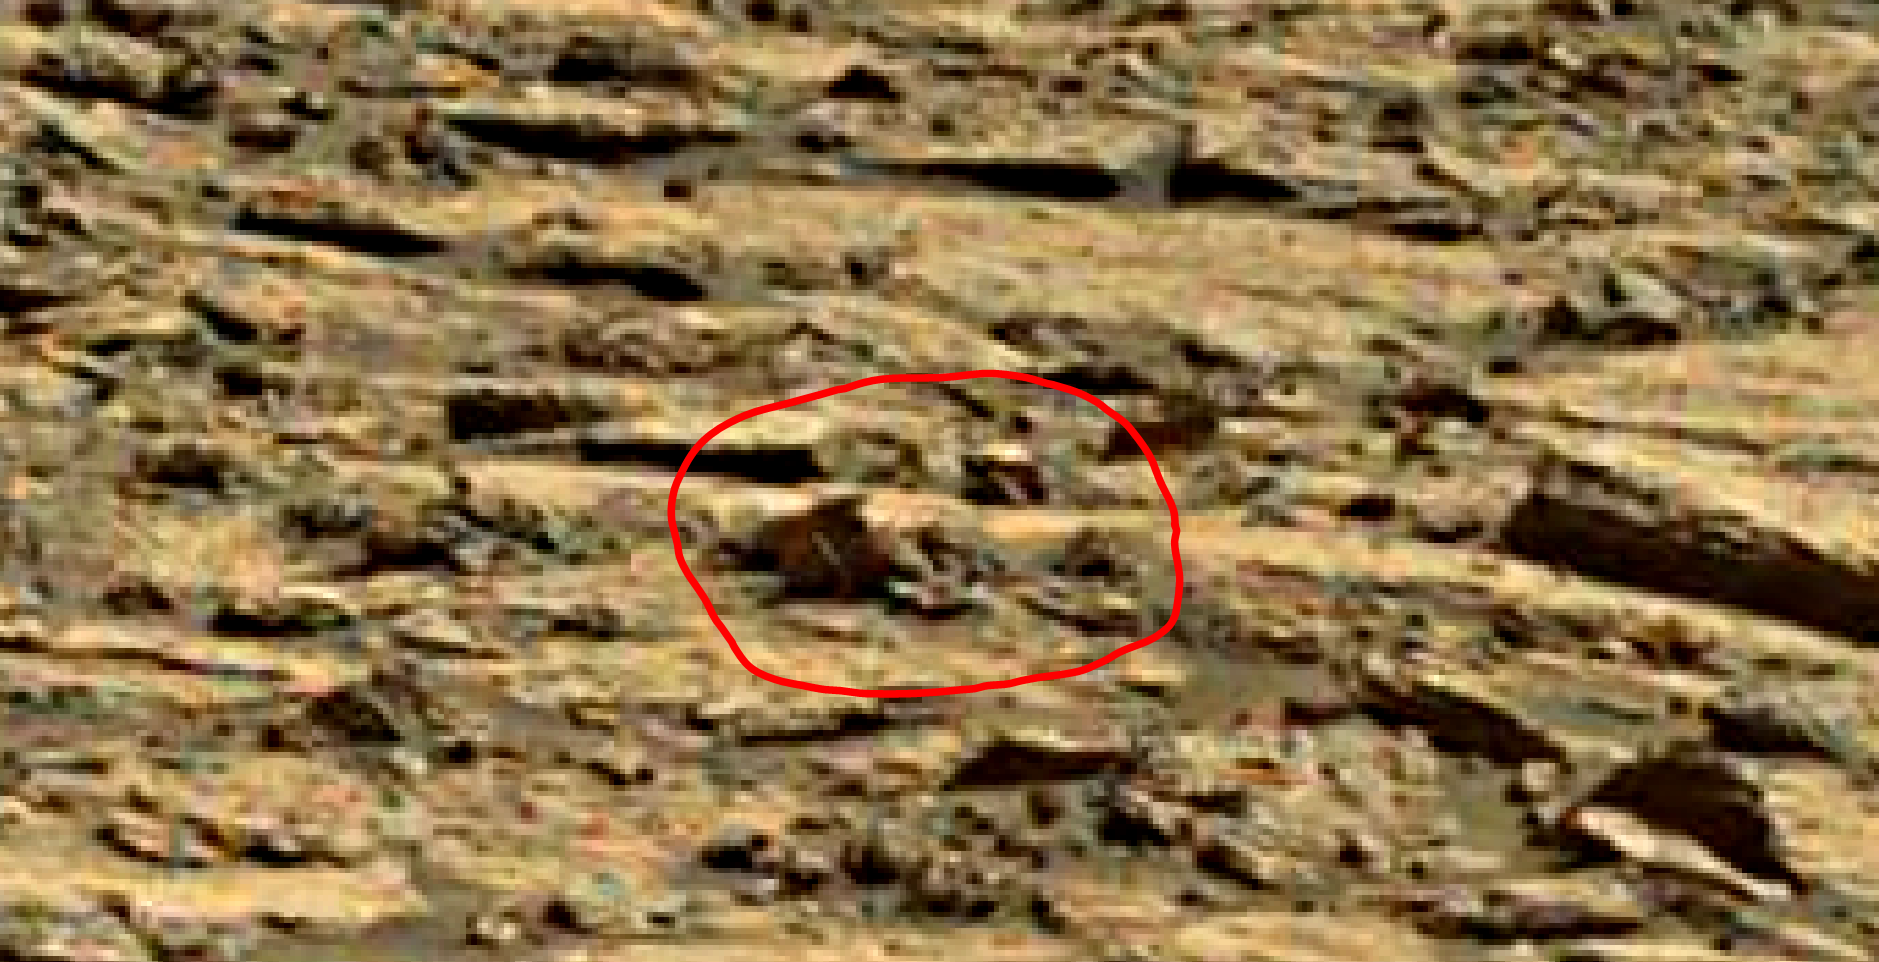 mars sol 1435 anomaly artifacts 1-1b was life on mars